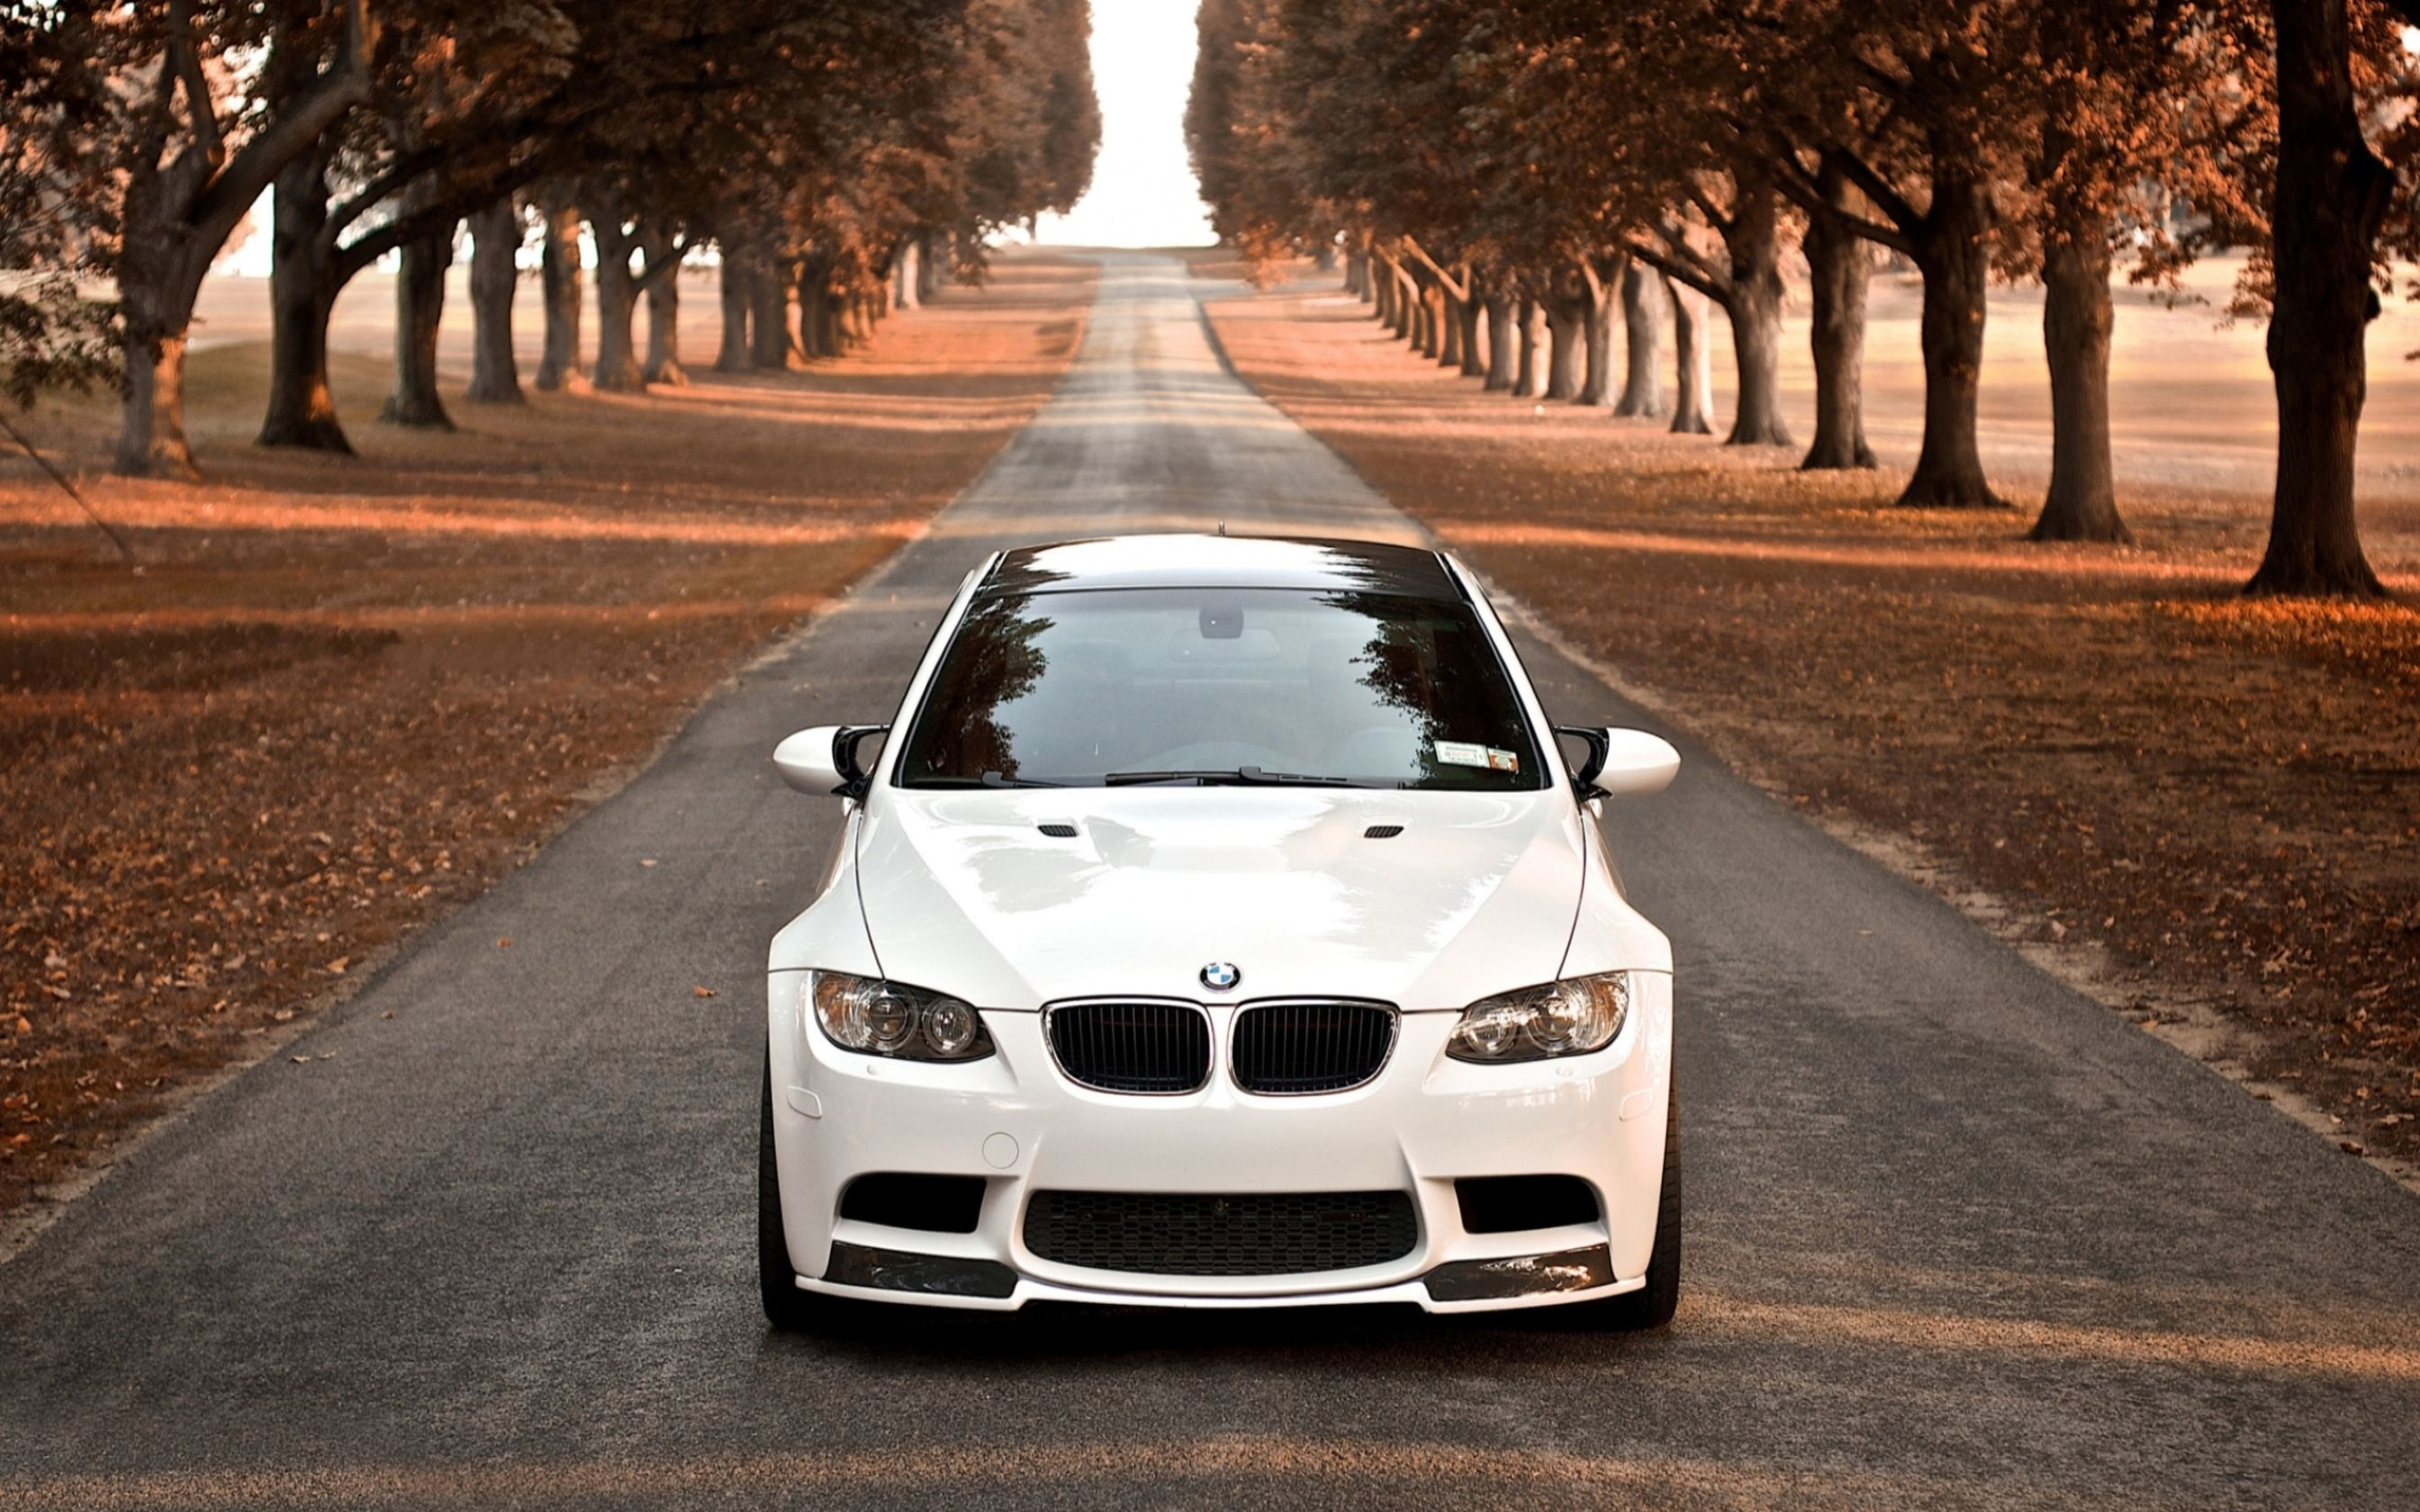 Download free HD BMW M3 Wallpaper, image